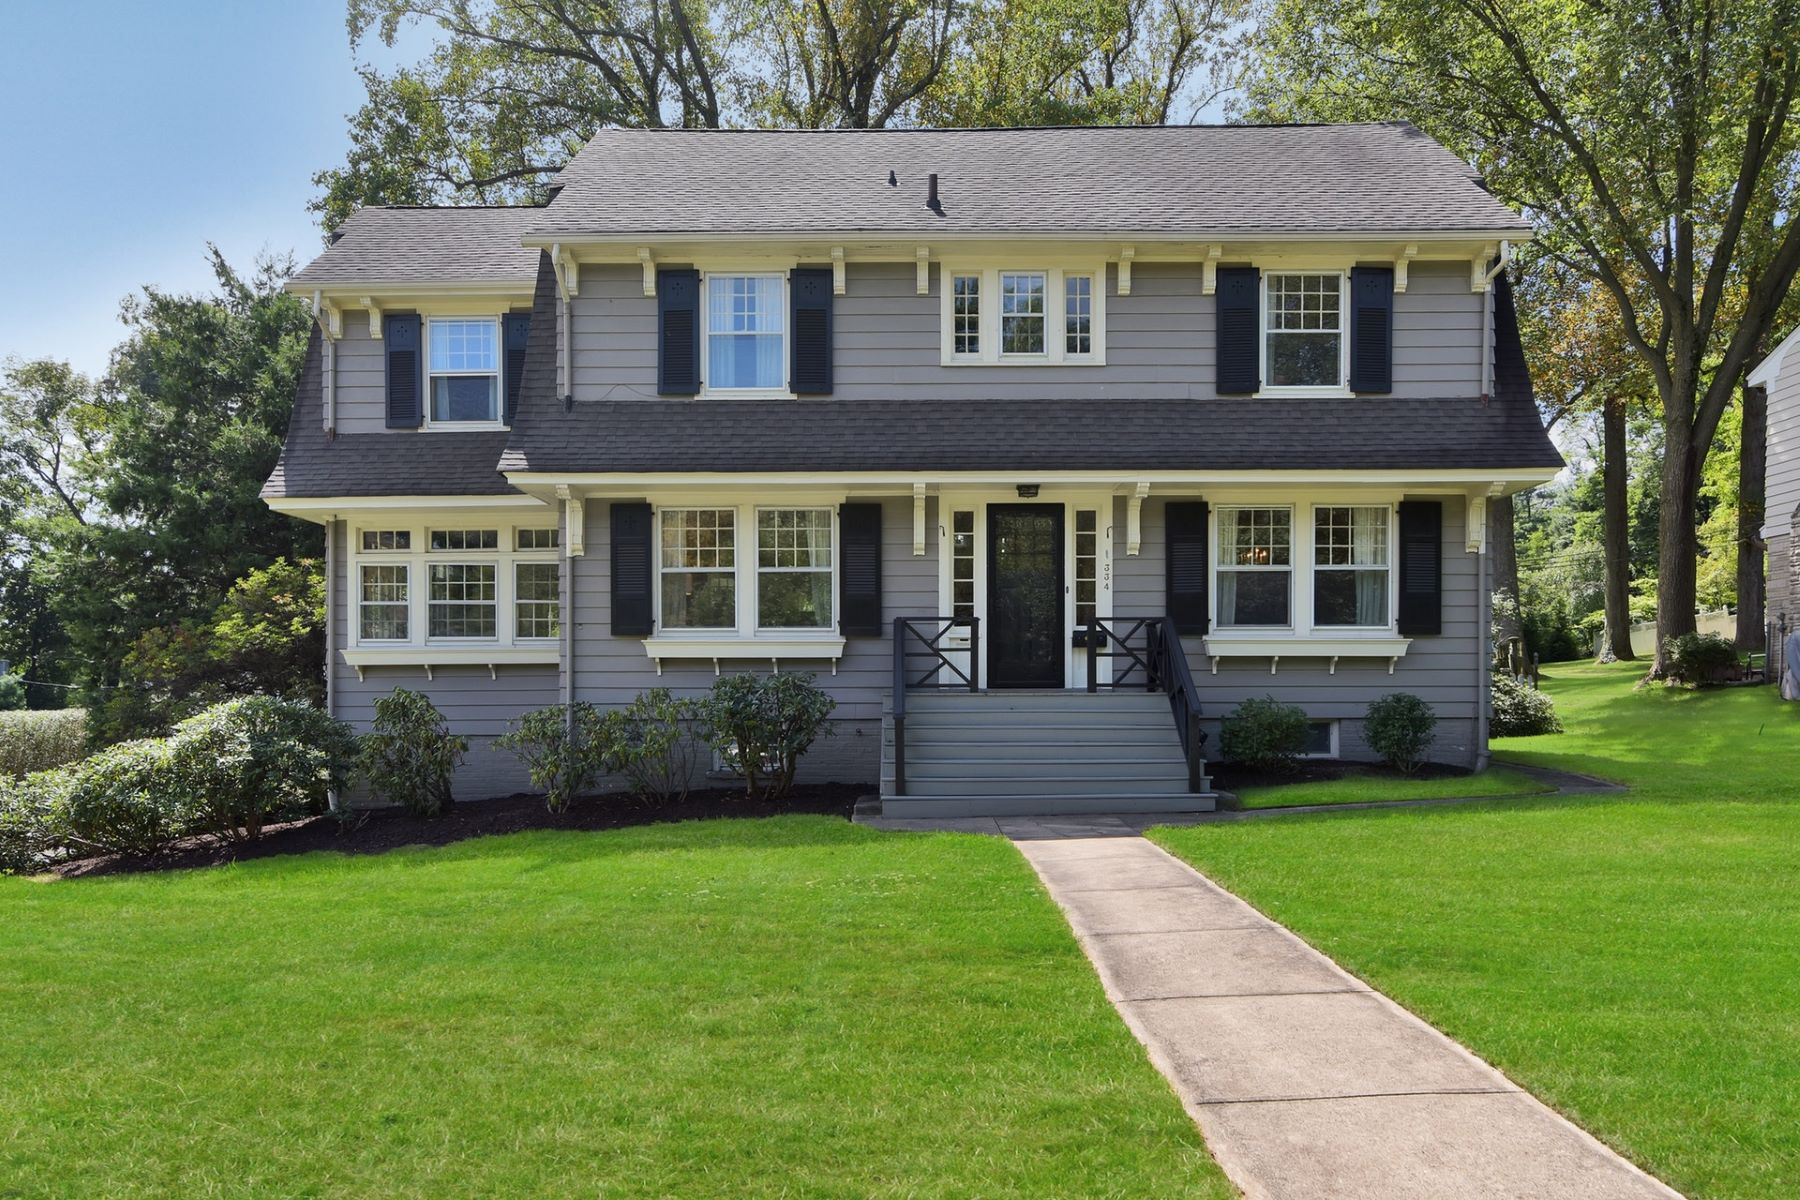 Single Family Homes for Sale at Gracious Living in a Vibrant Community 334 Tillou Road South Orange, New Jersey 07079 United States